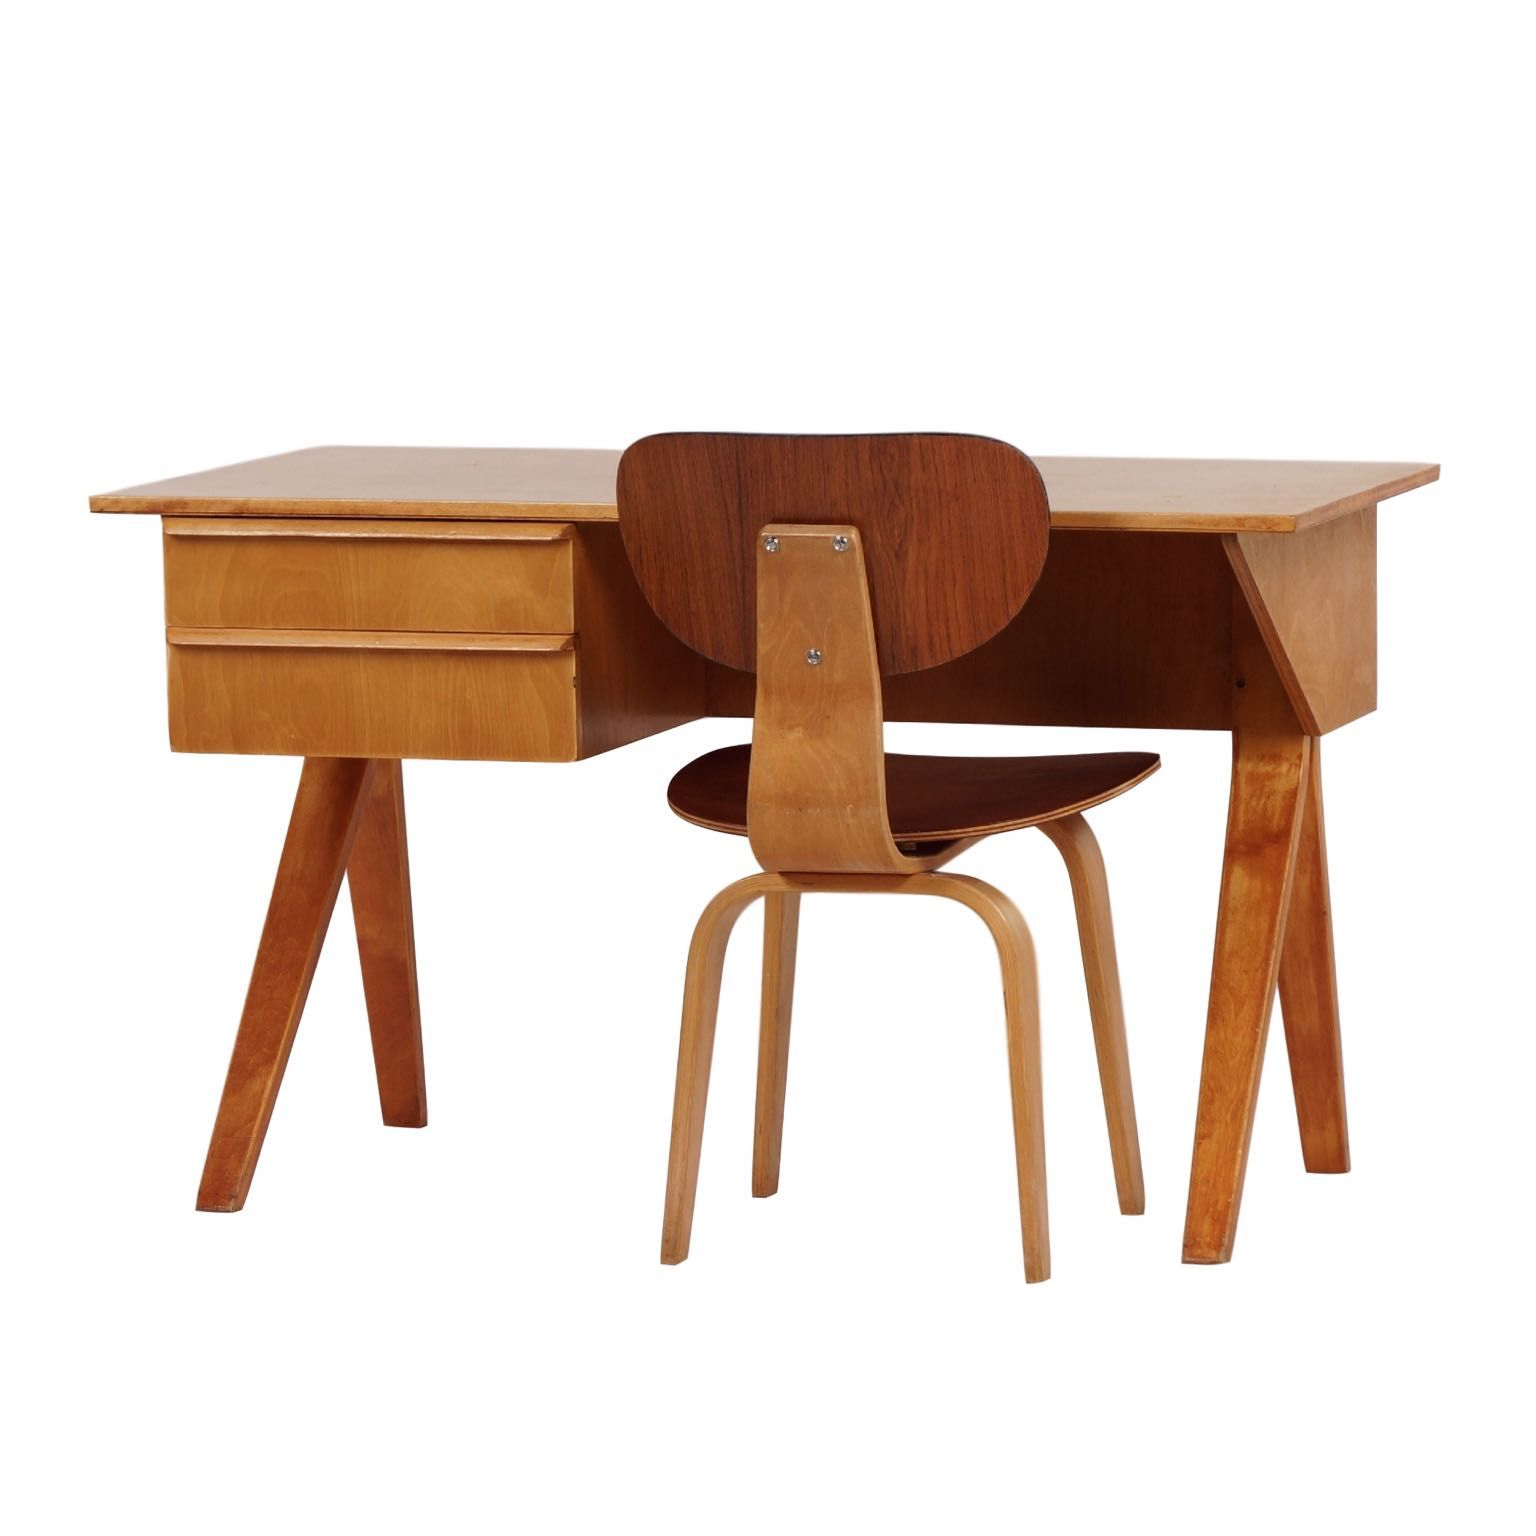 EB02 Desk Set Birch Series by Cees braakman for Pastoe, ca 1952 | Mid Century Design